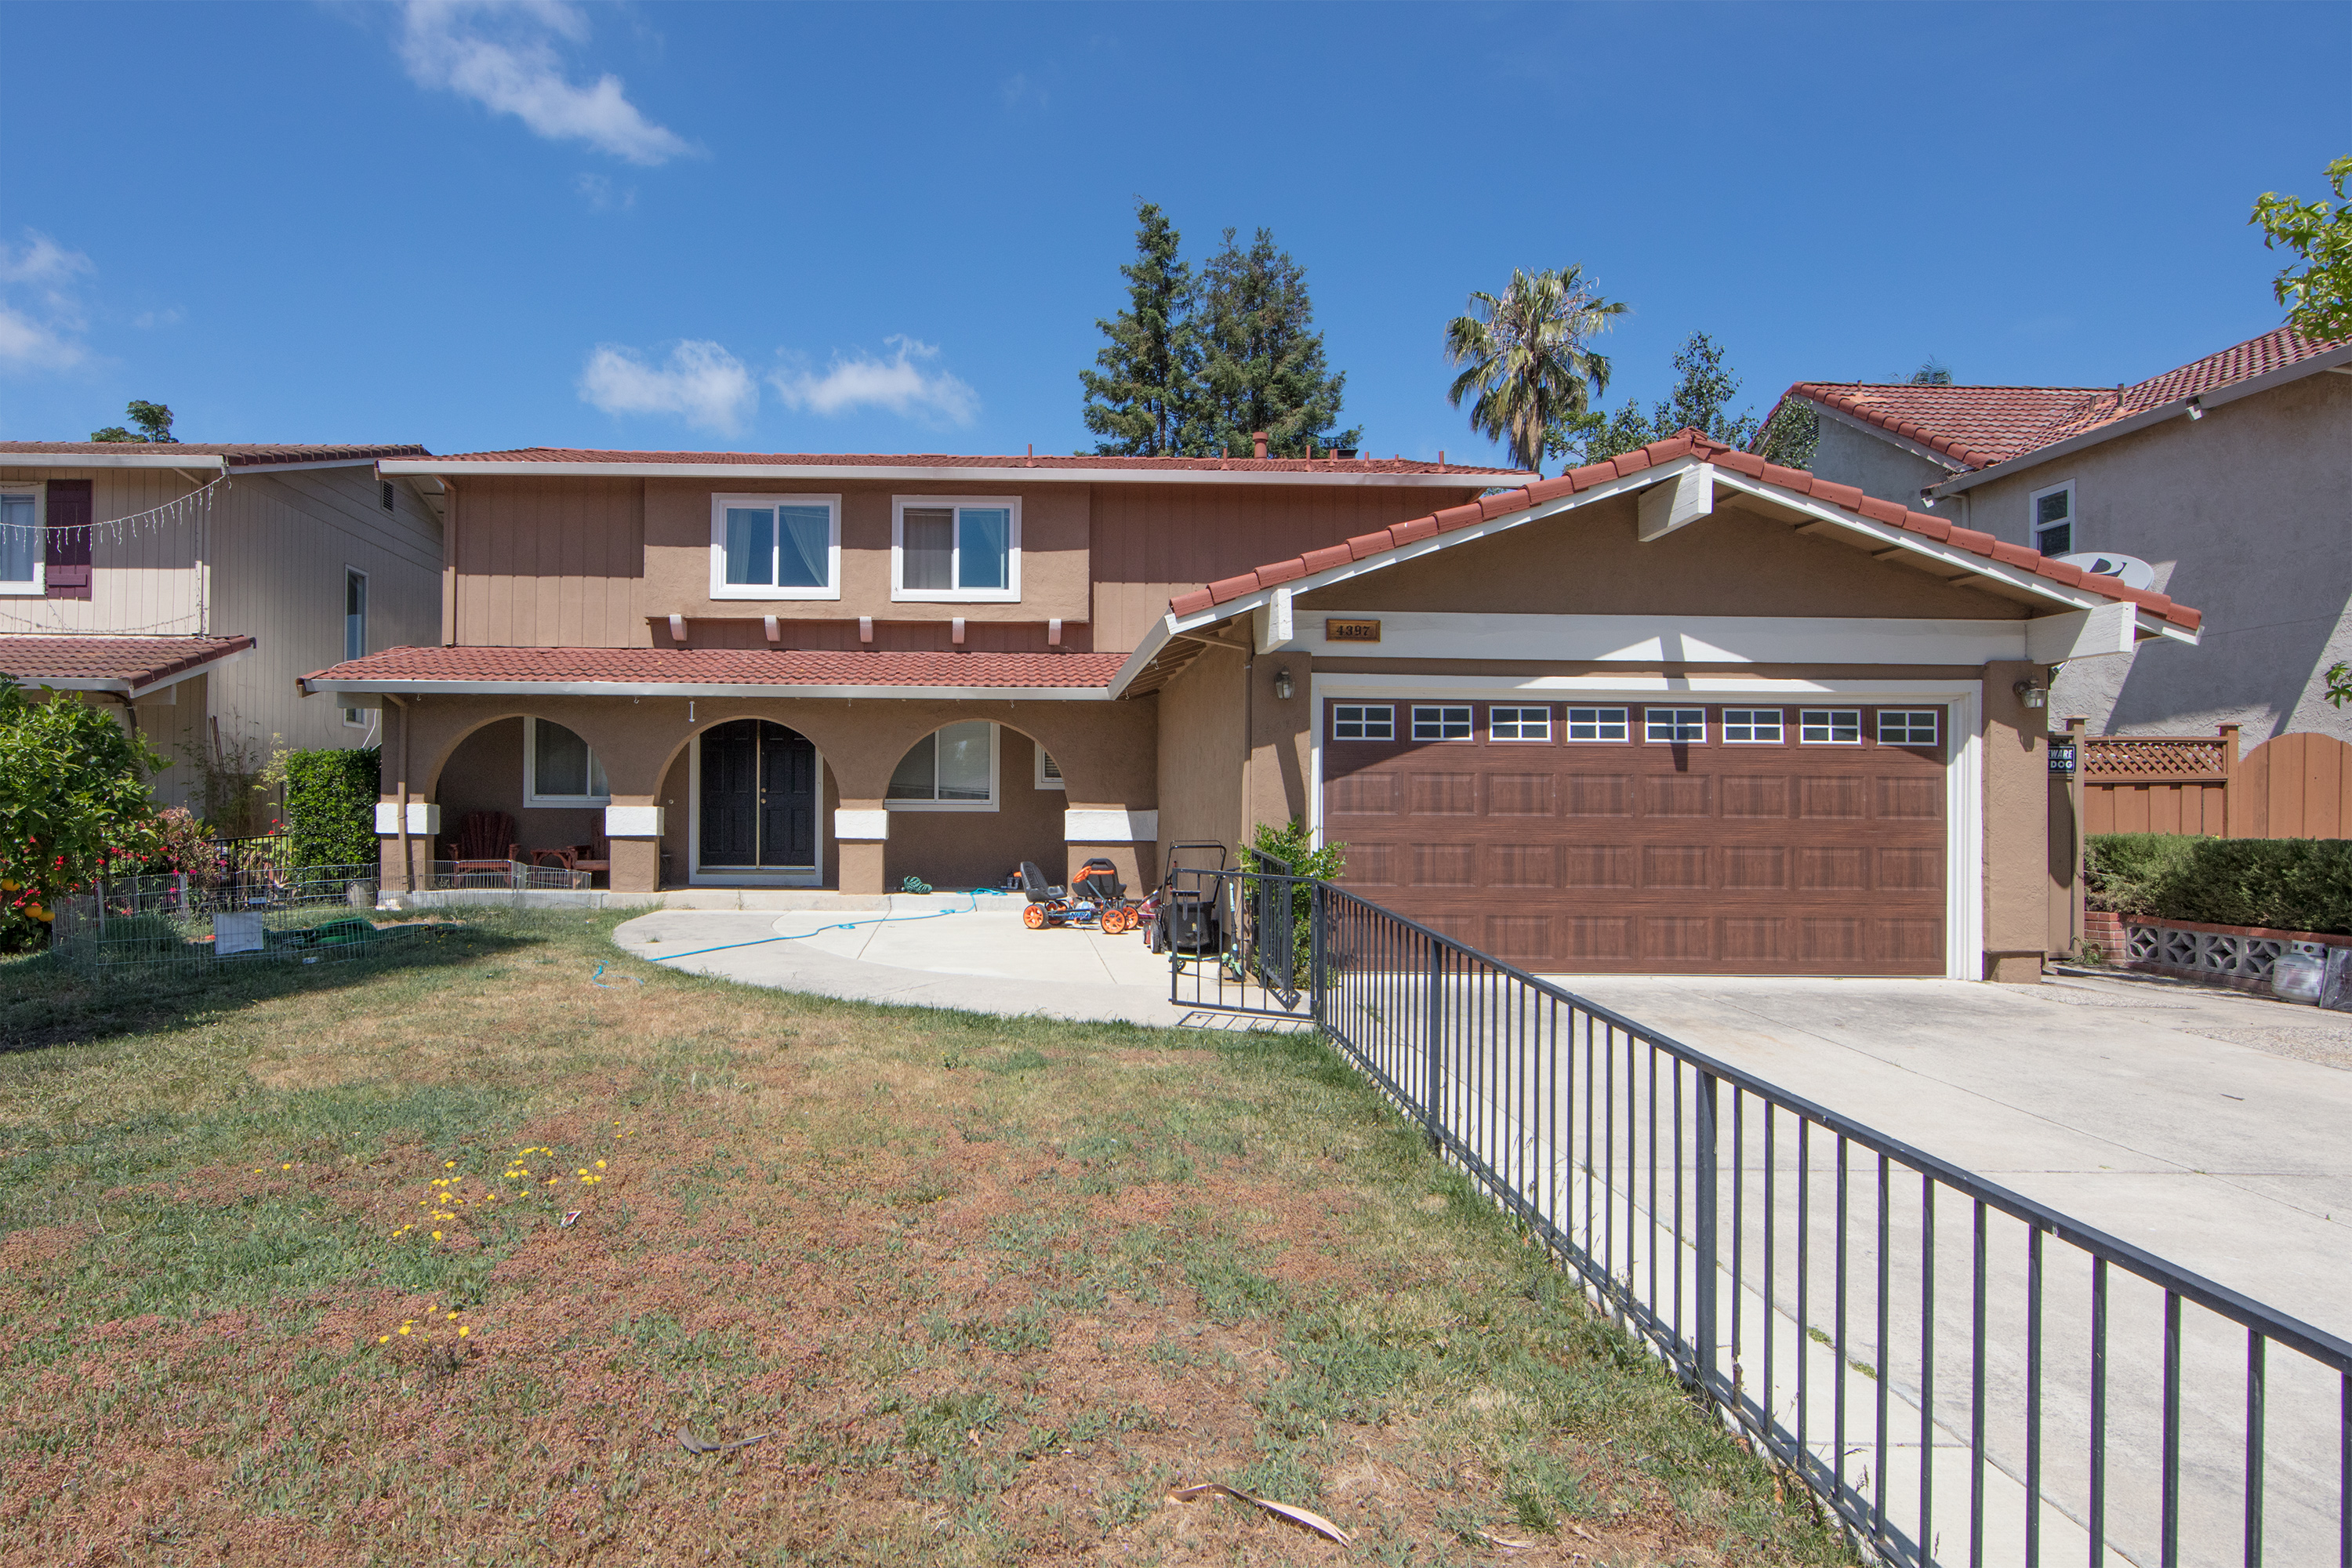 Picture of 4397 Stone Canyon Dr, San Jose 95136 - Home For Sale